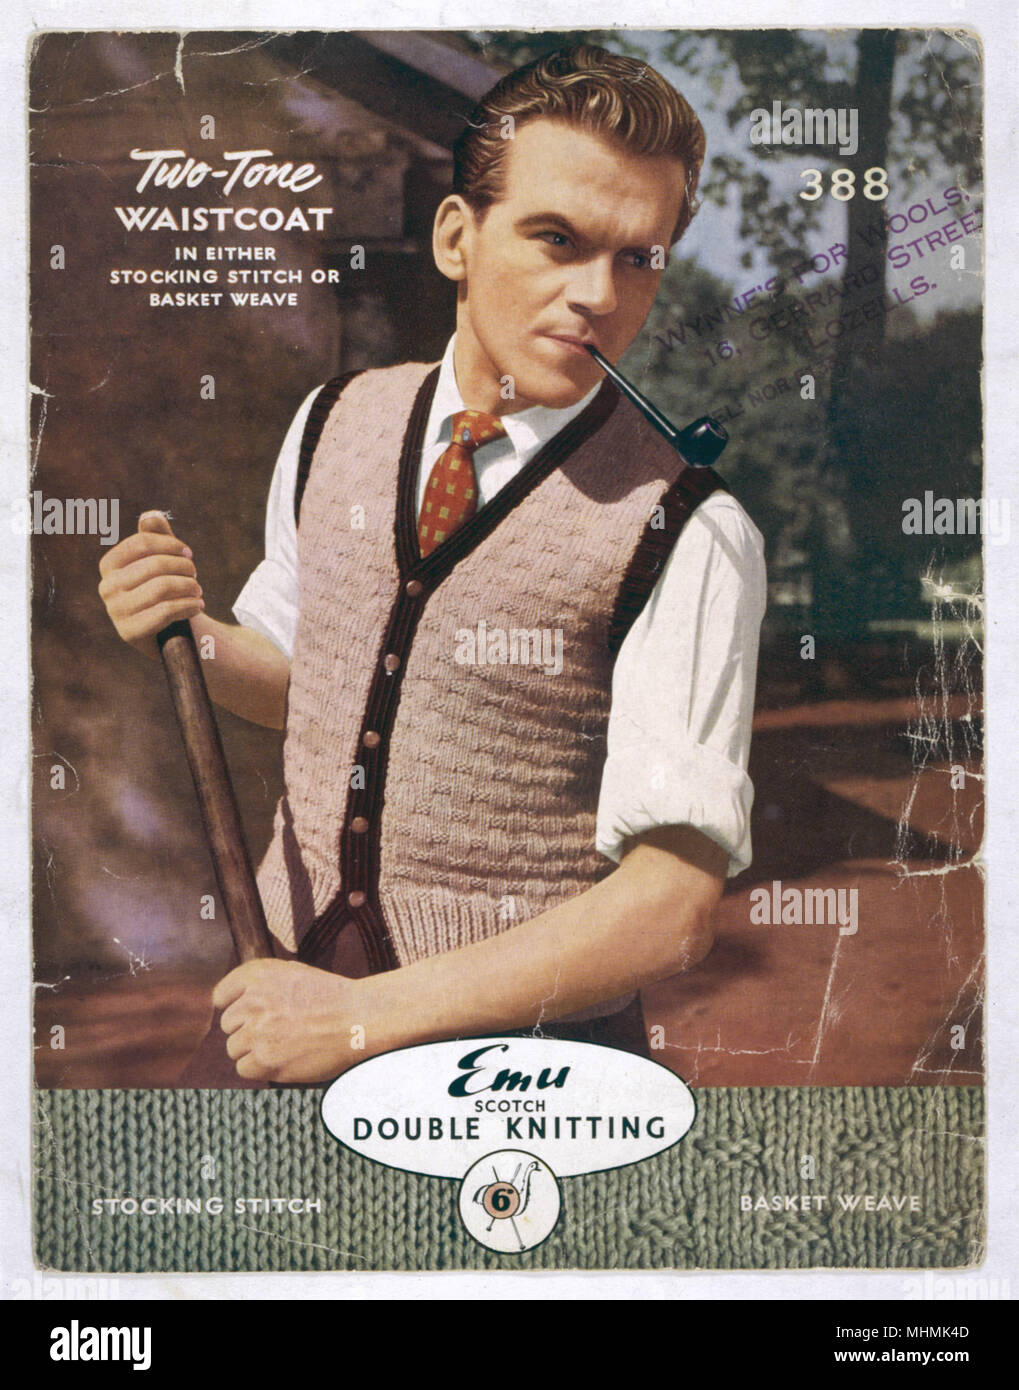 This dependable looking chap partakes of a spot of gardening and what better to keep his chest warm than this knitted two-tone waistcoat using basket weave stitch.     Date: 1950s - Stock Image